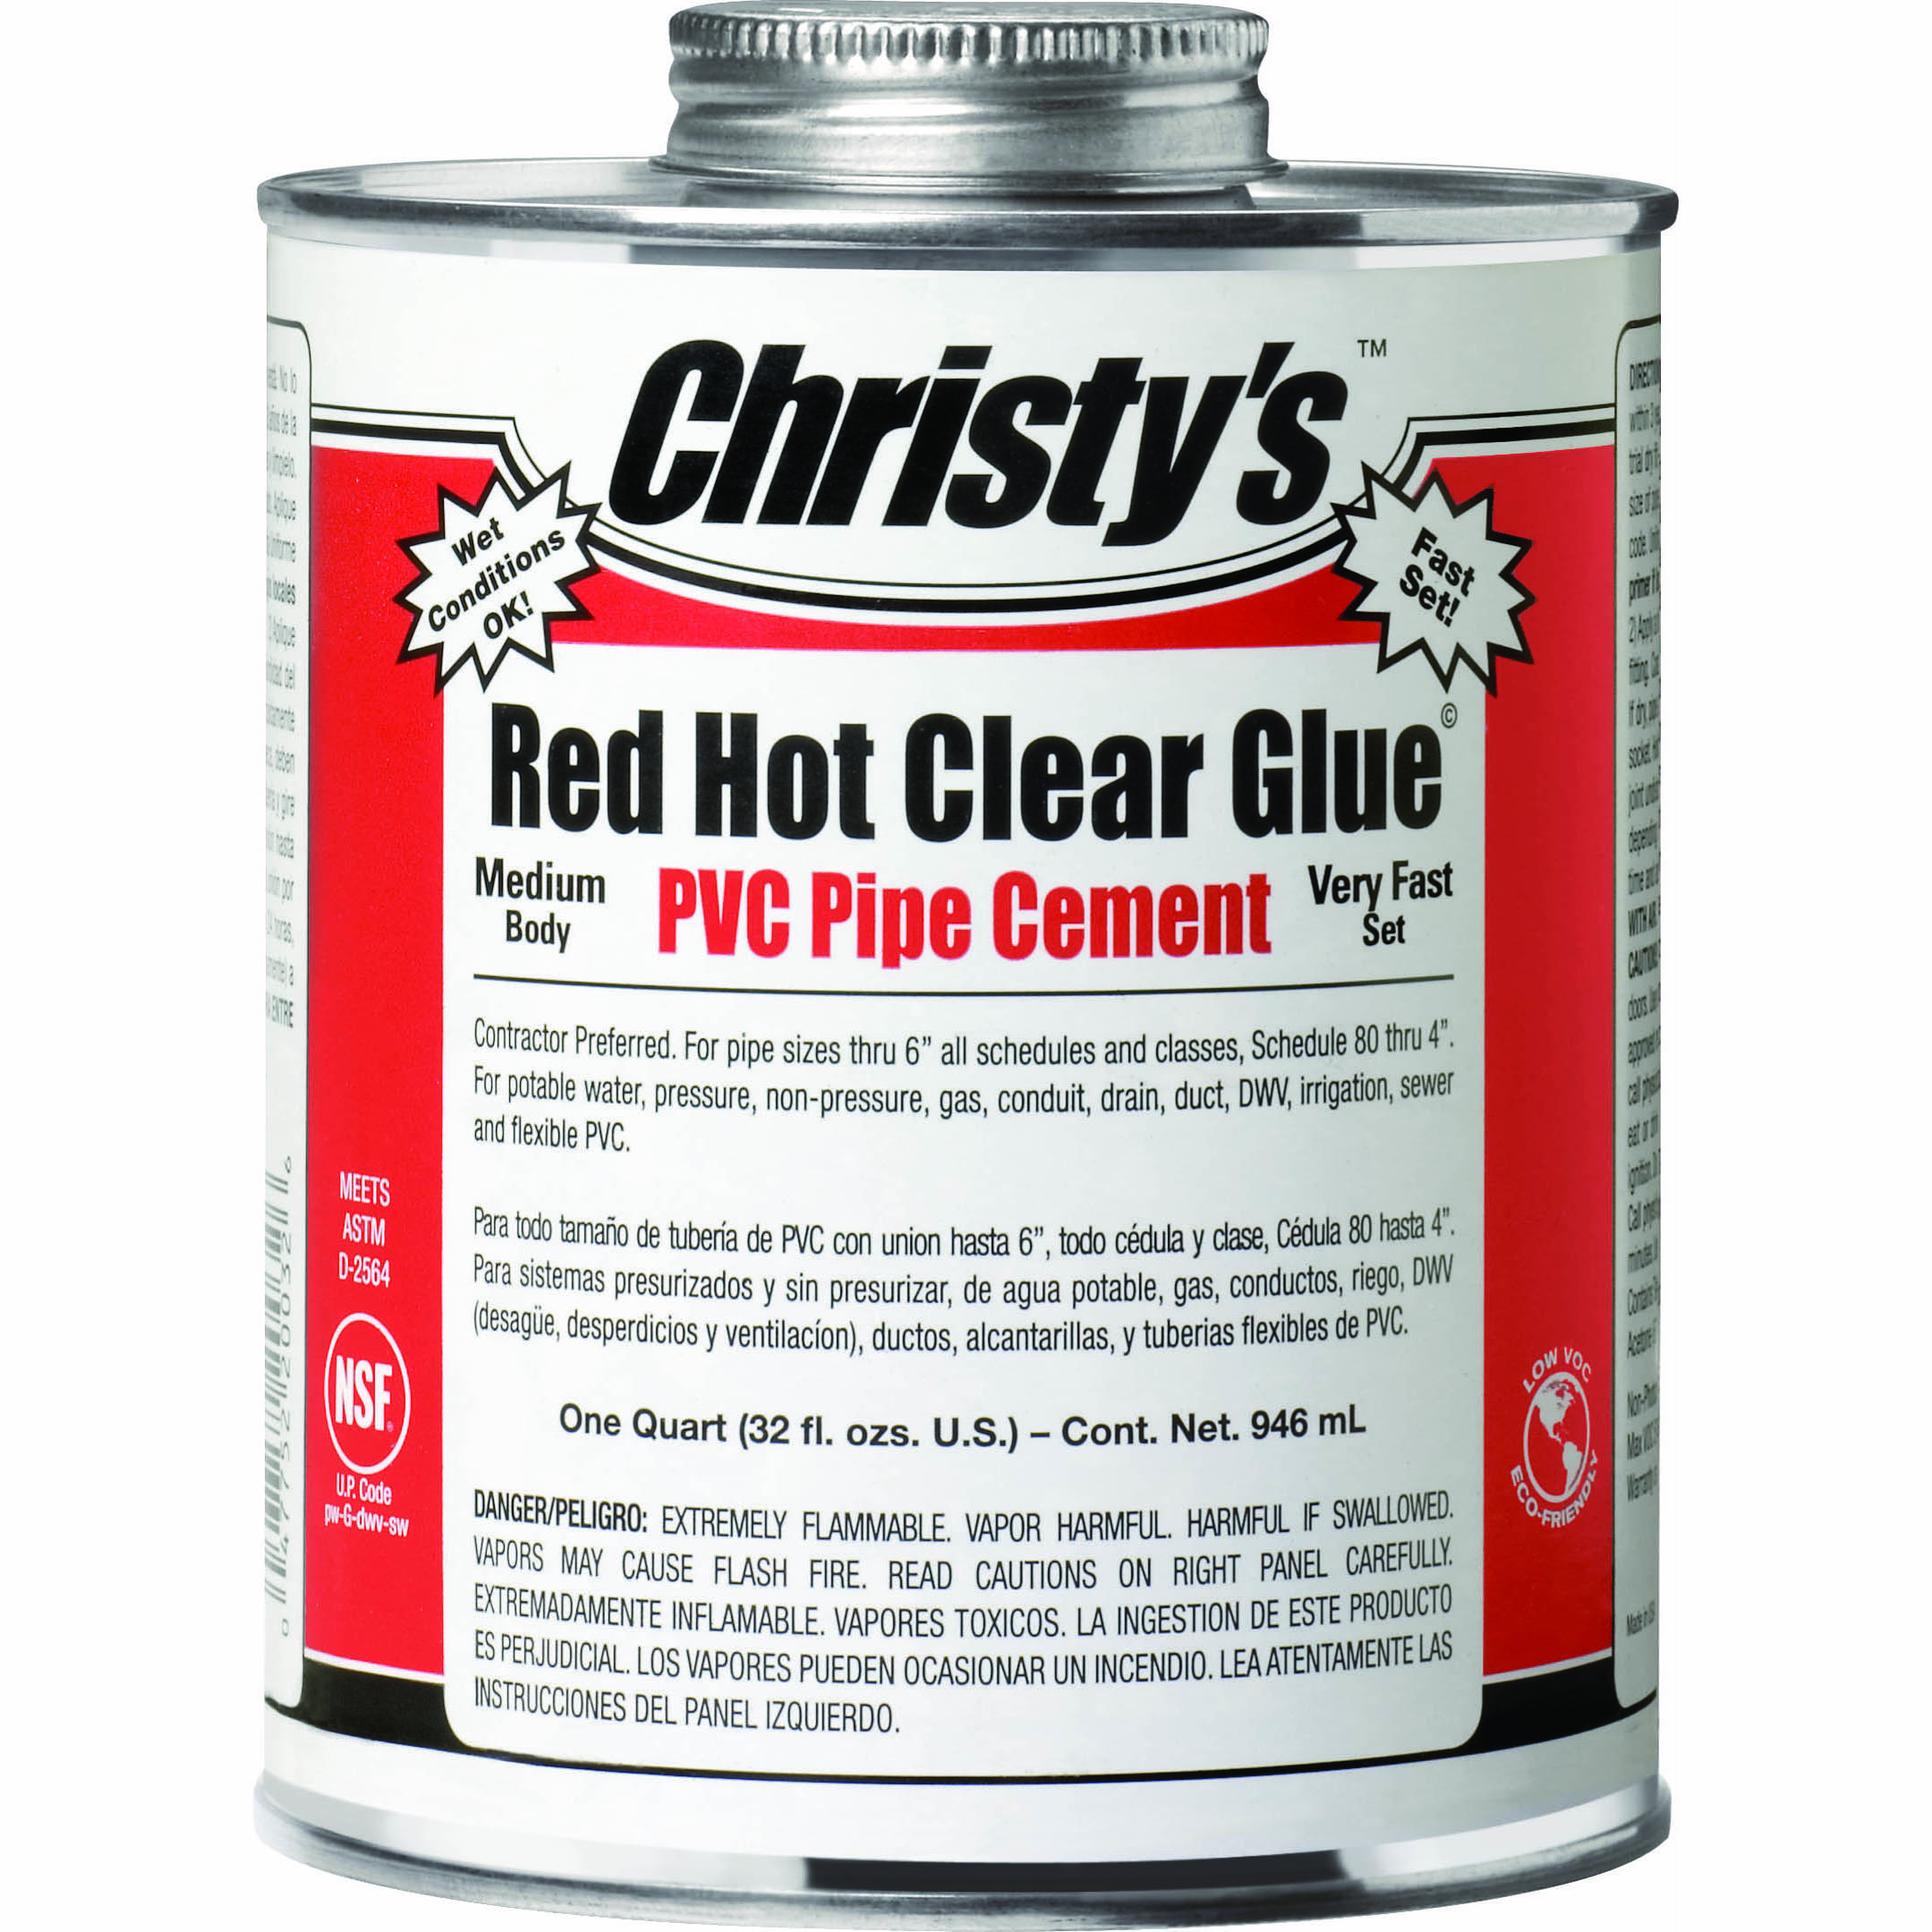 Red Hot Clear Glue